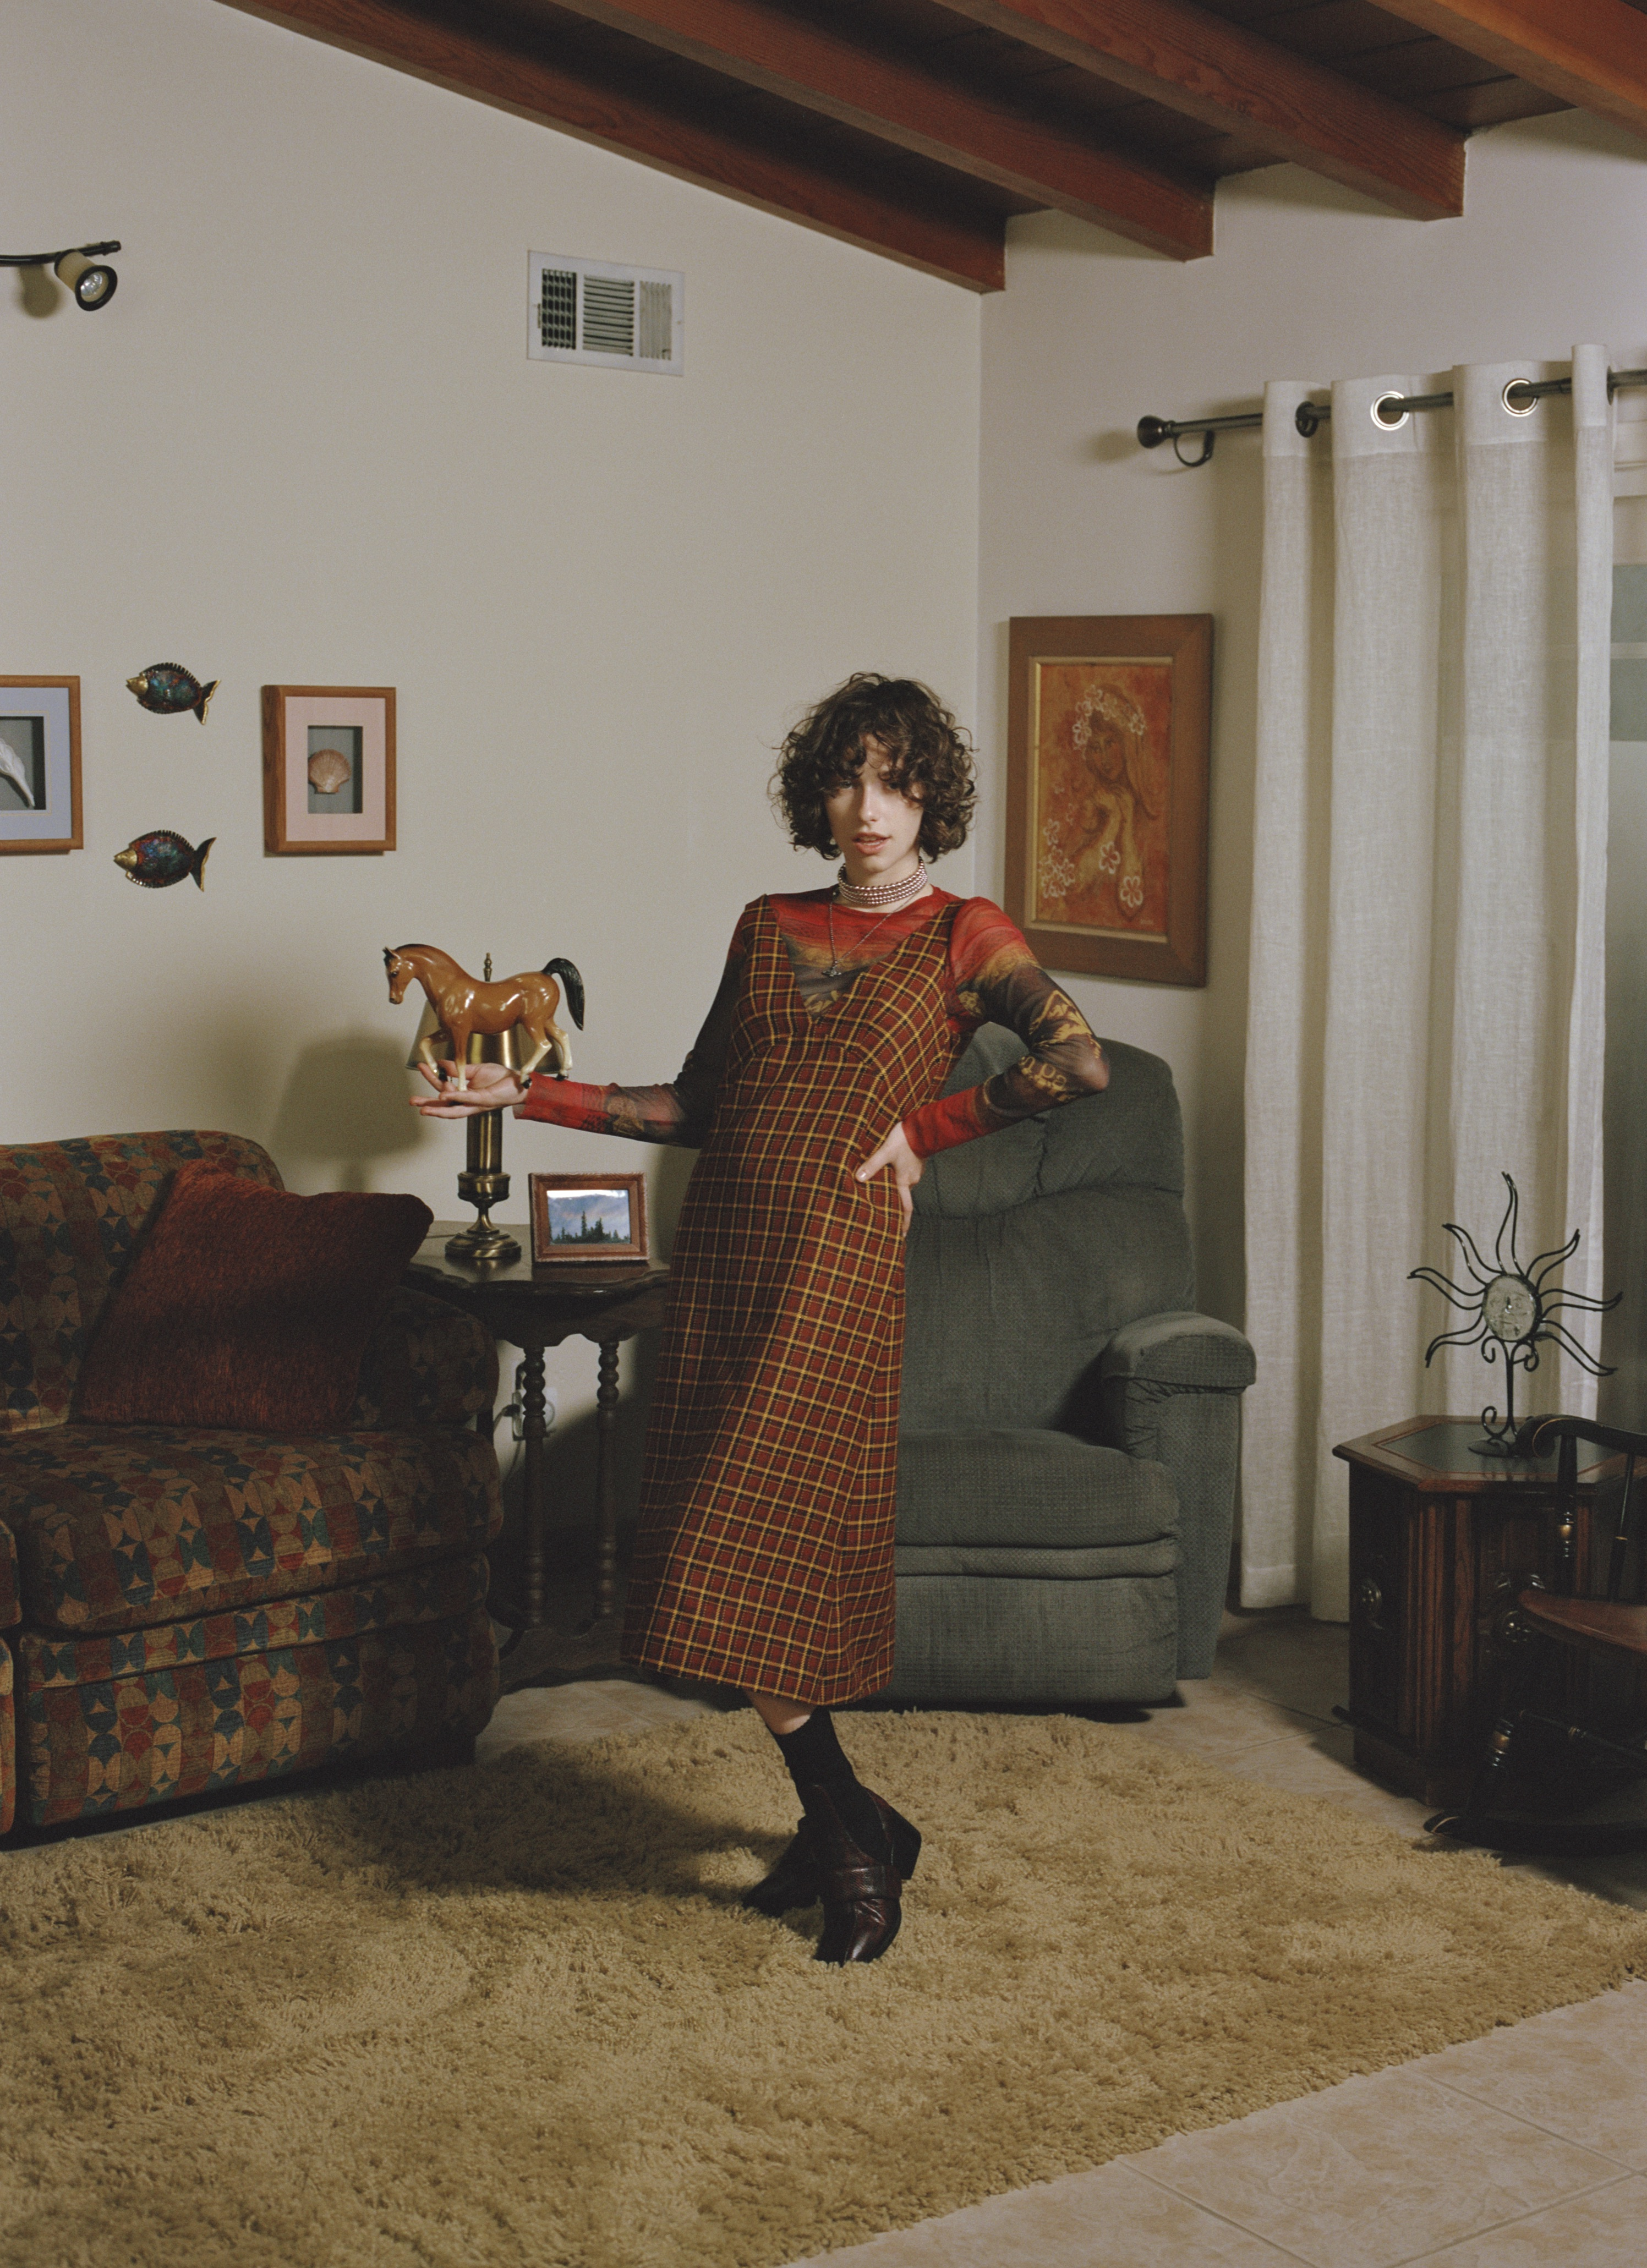 King Princess for the Autumn 19 issue of Wonderland check dress